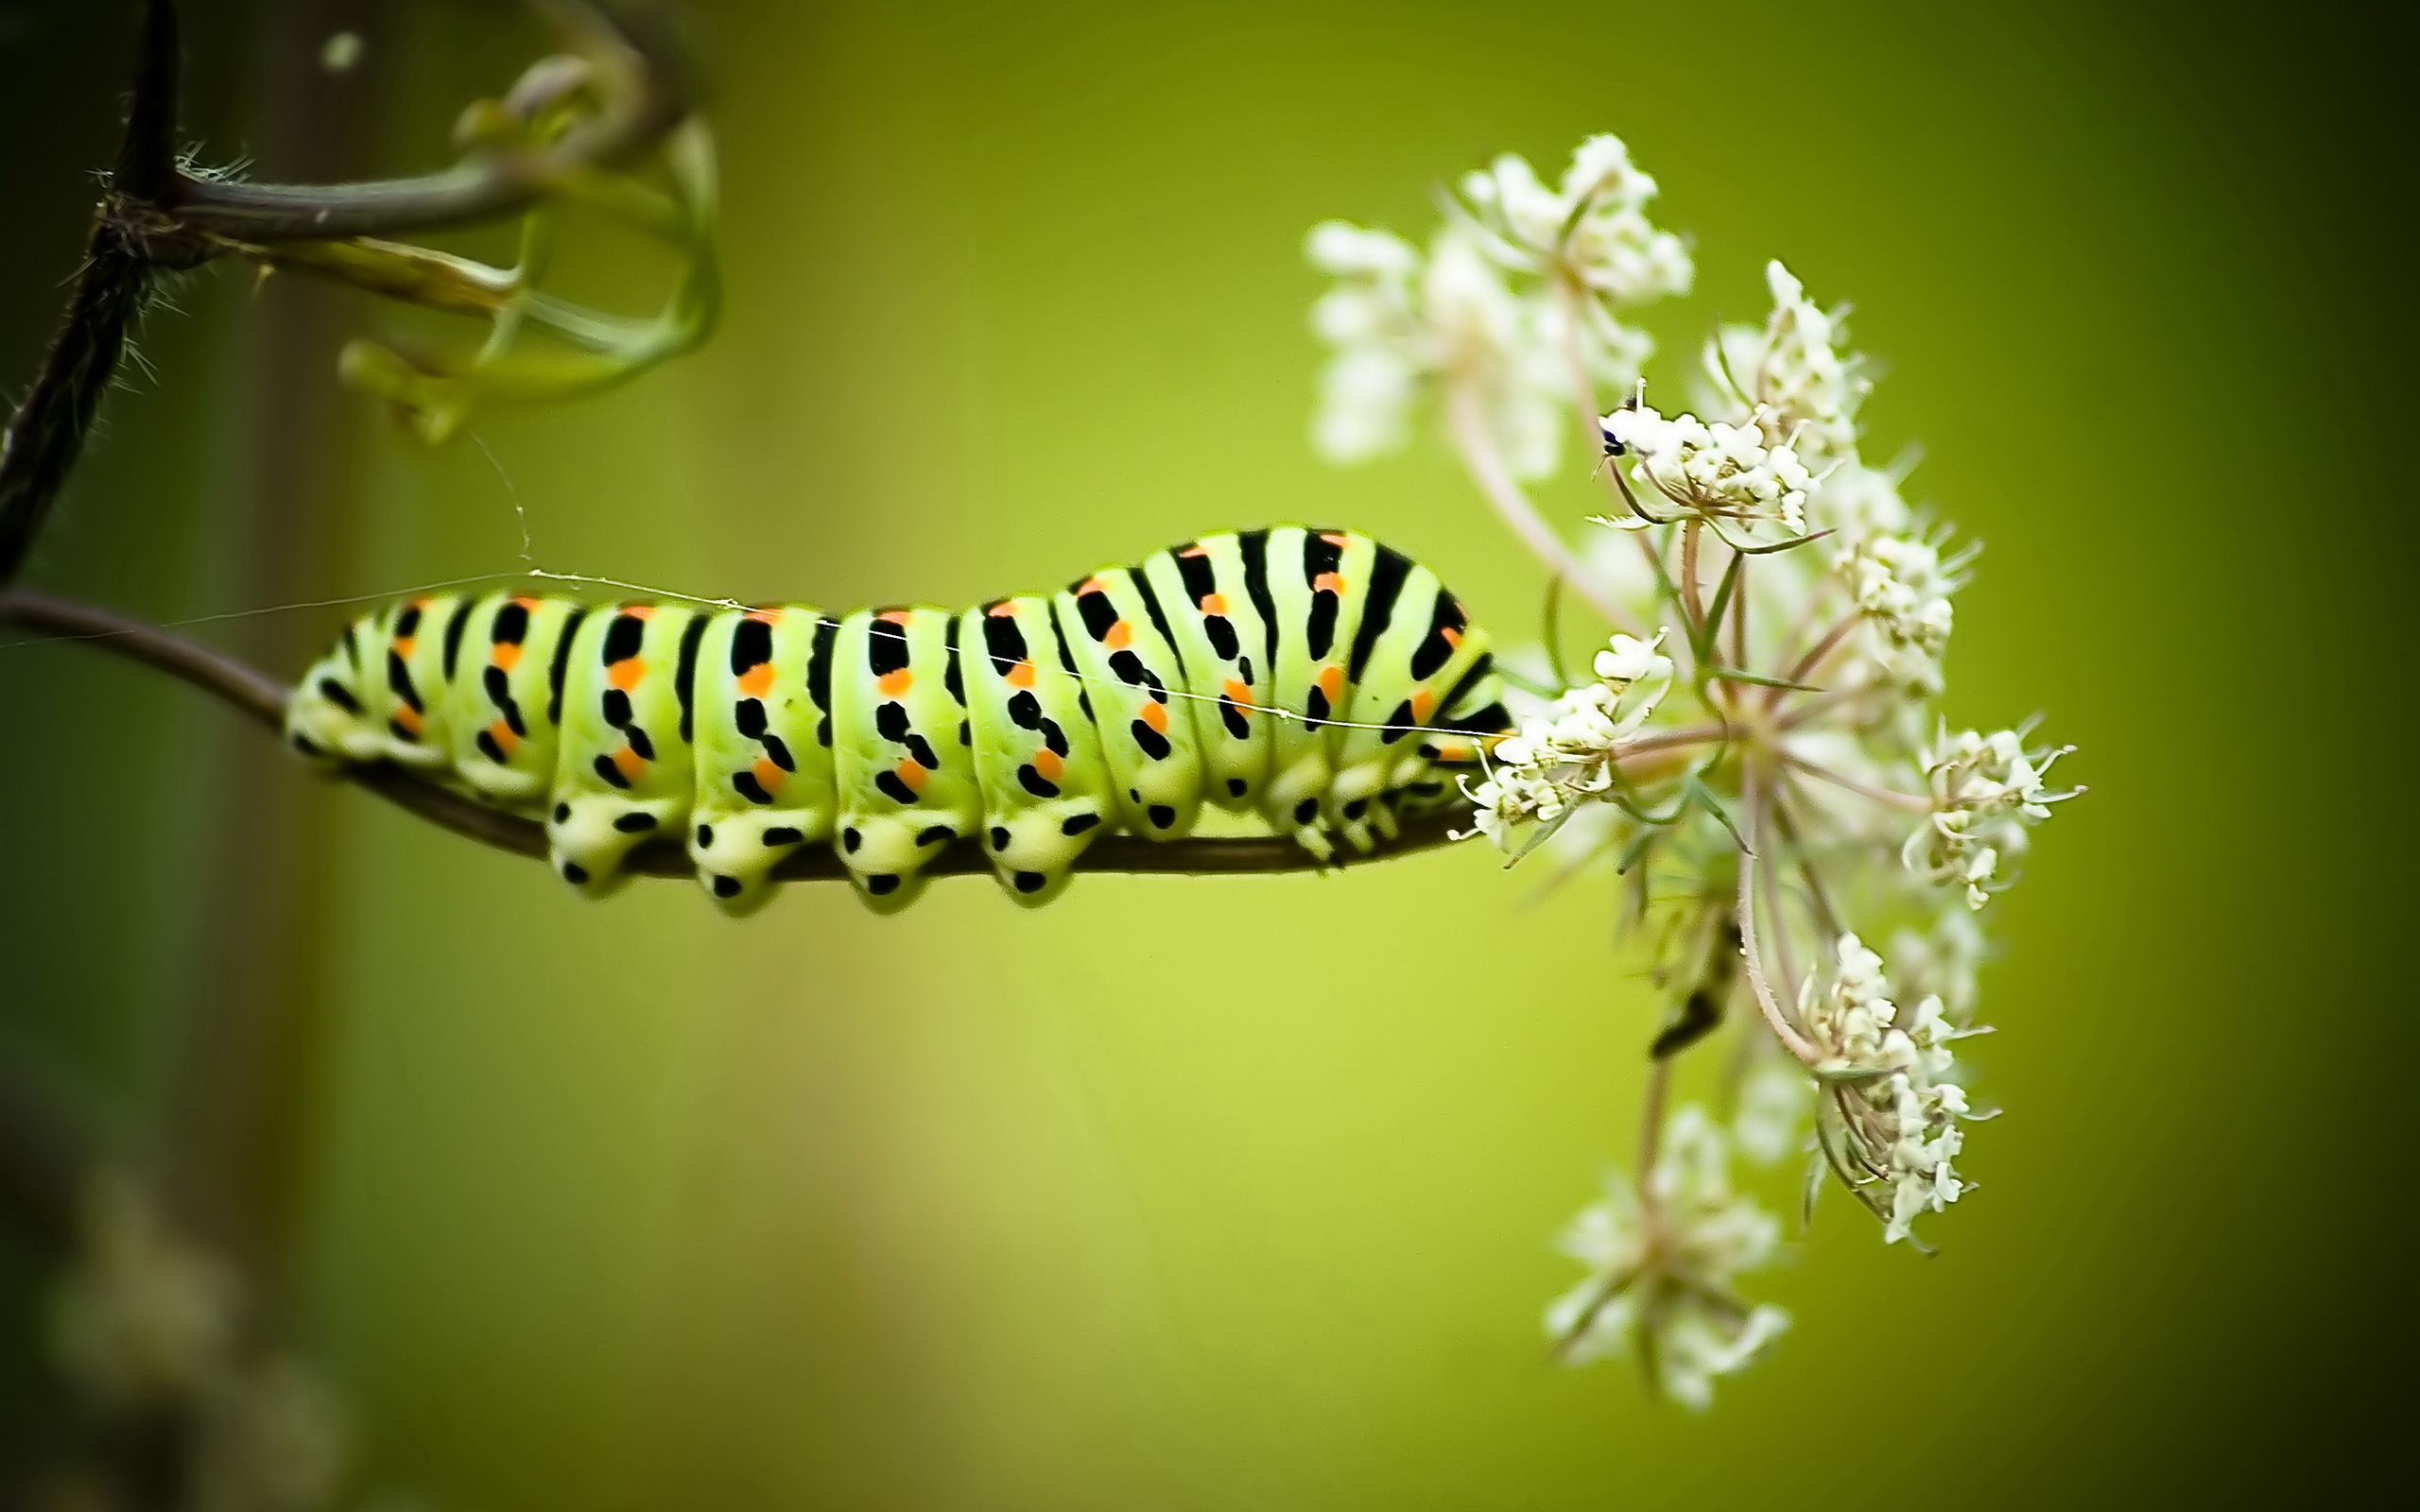 60 Caterpillar HD Wallpapers Backgrounds 2560x1600